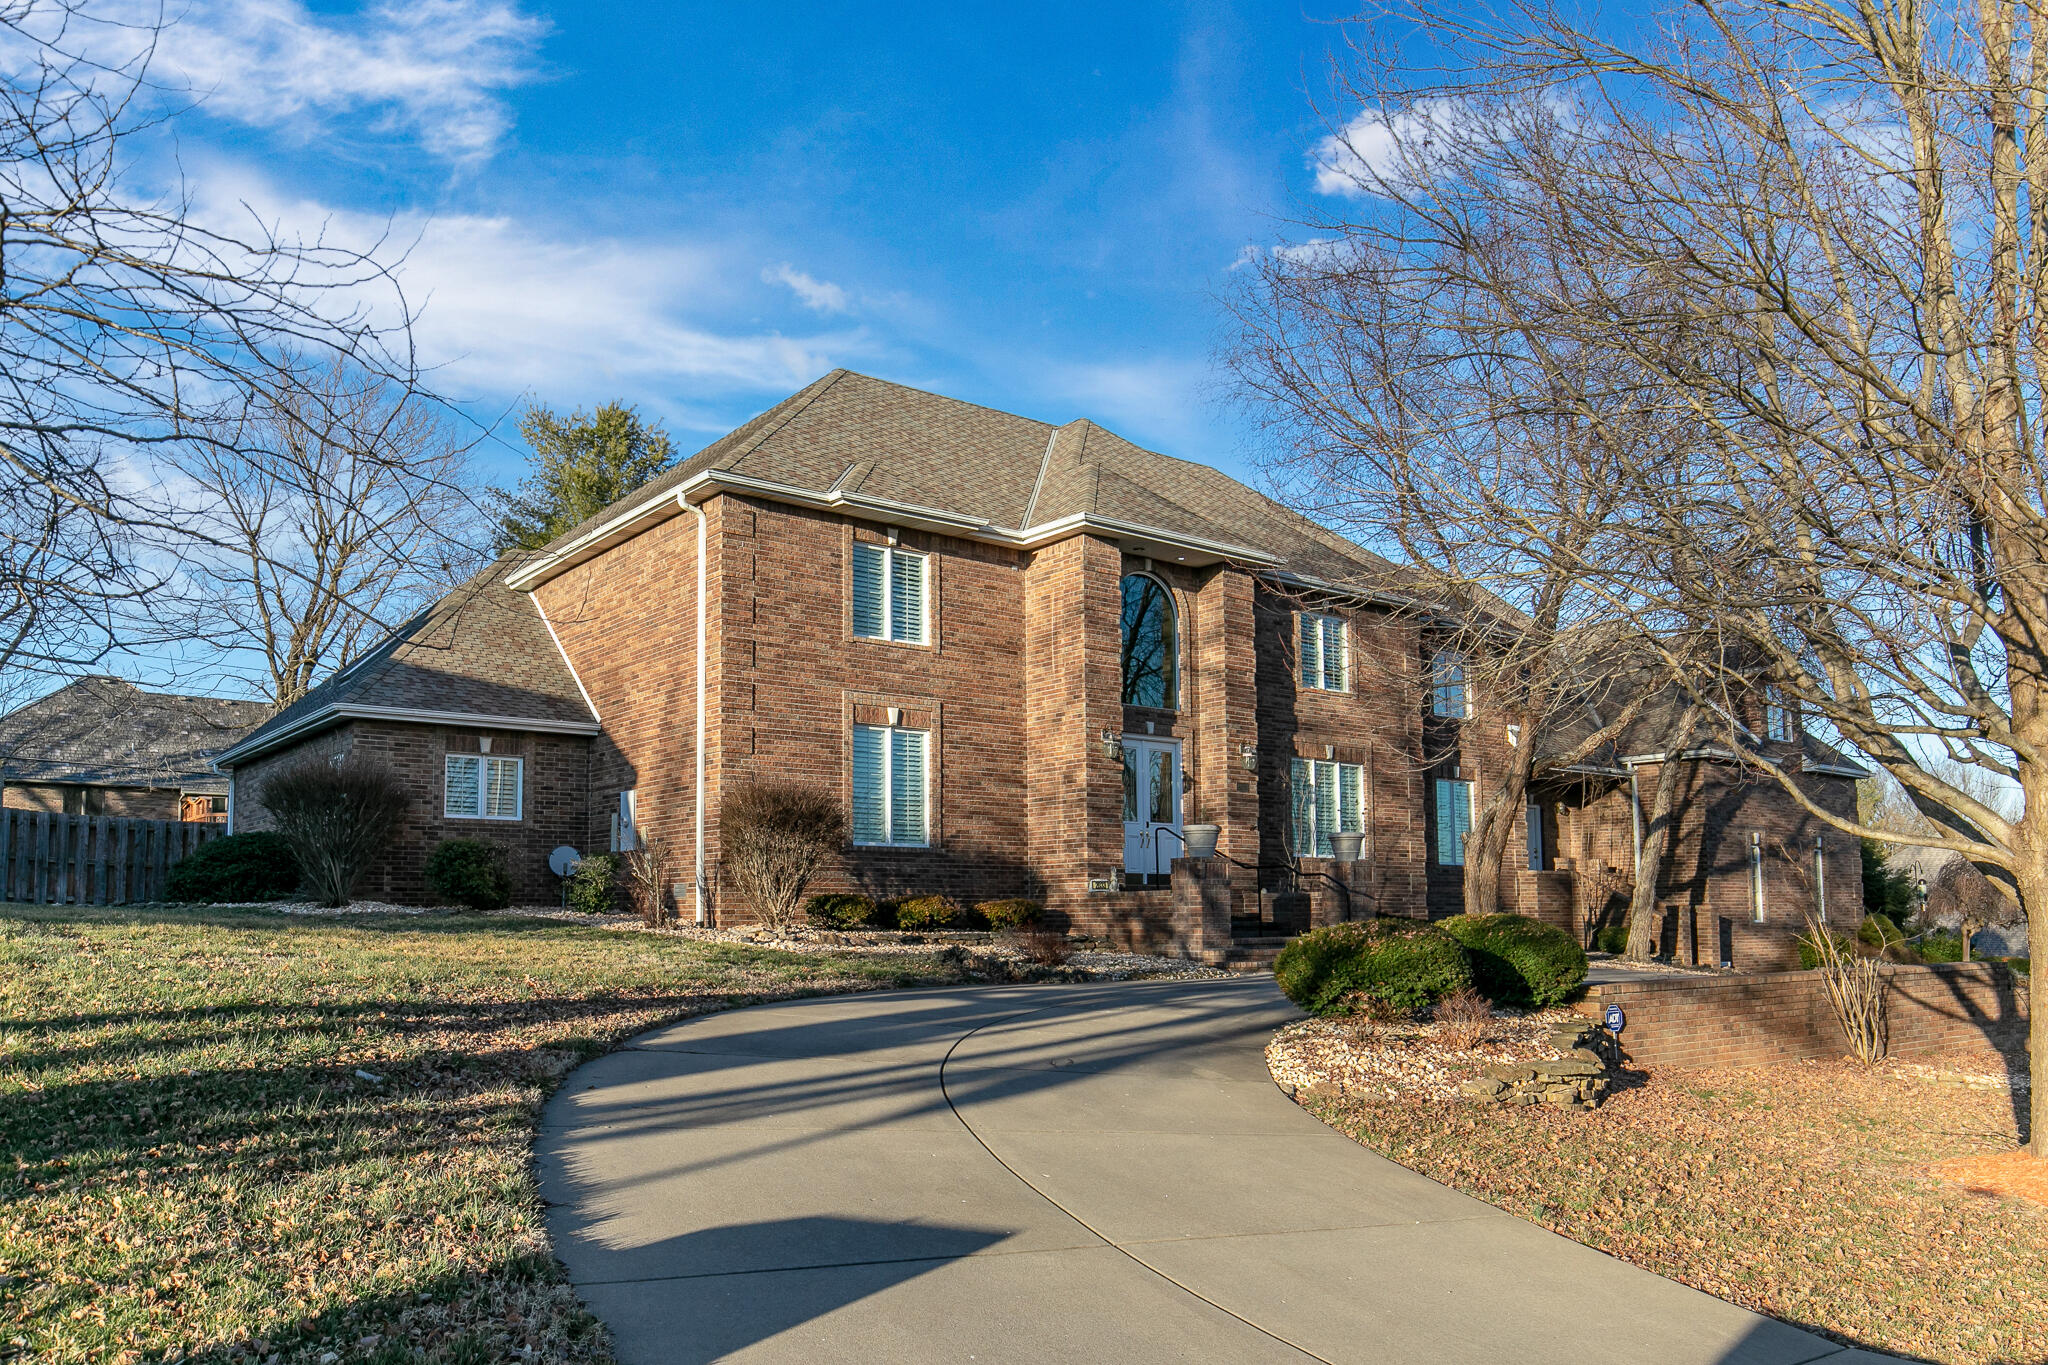 2033 East Norshire Street Springfield, MO 65804